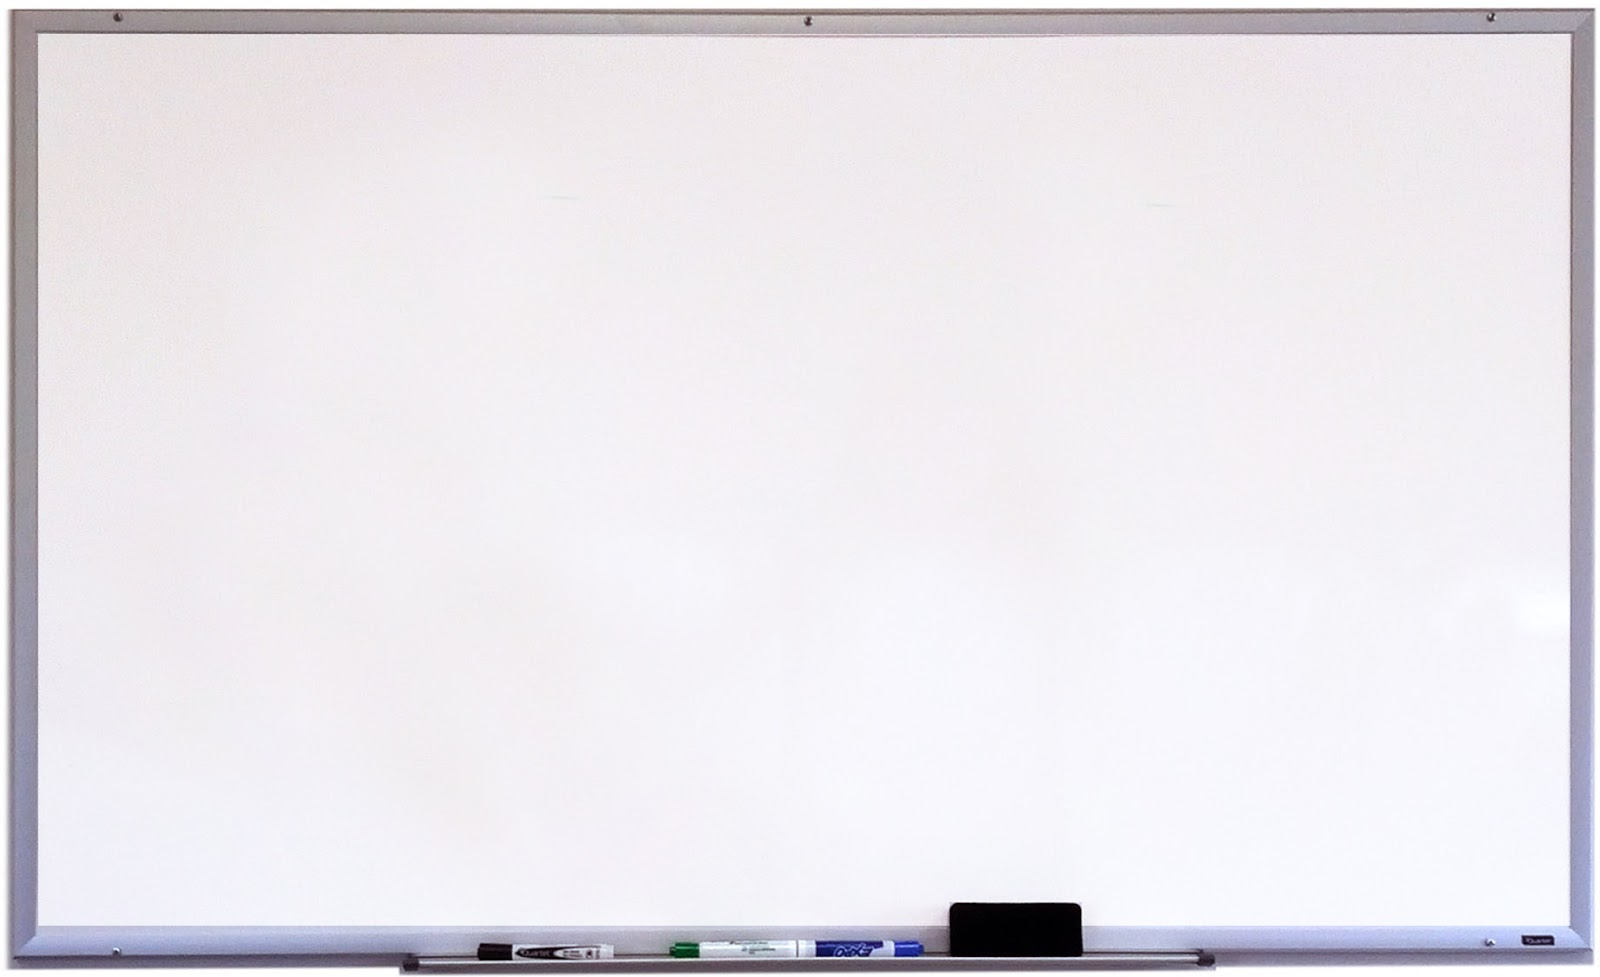 File:Whiteboard with markers.jpg - Wikimedia Commons